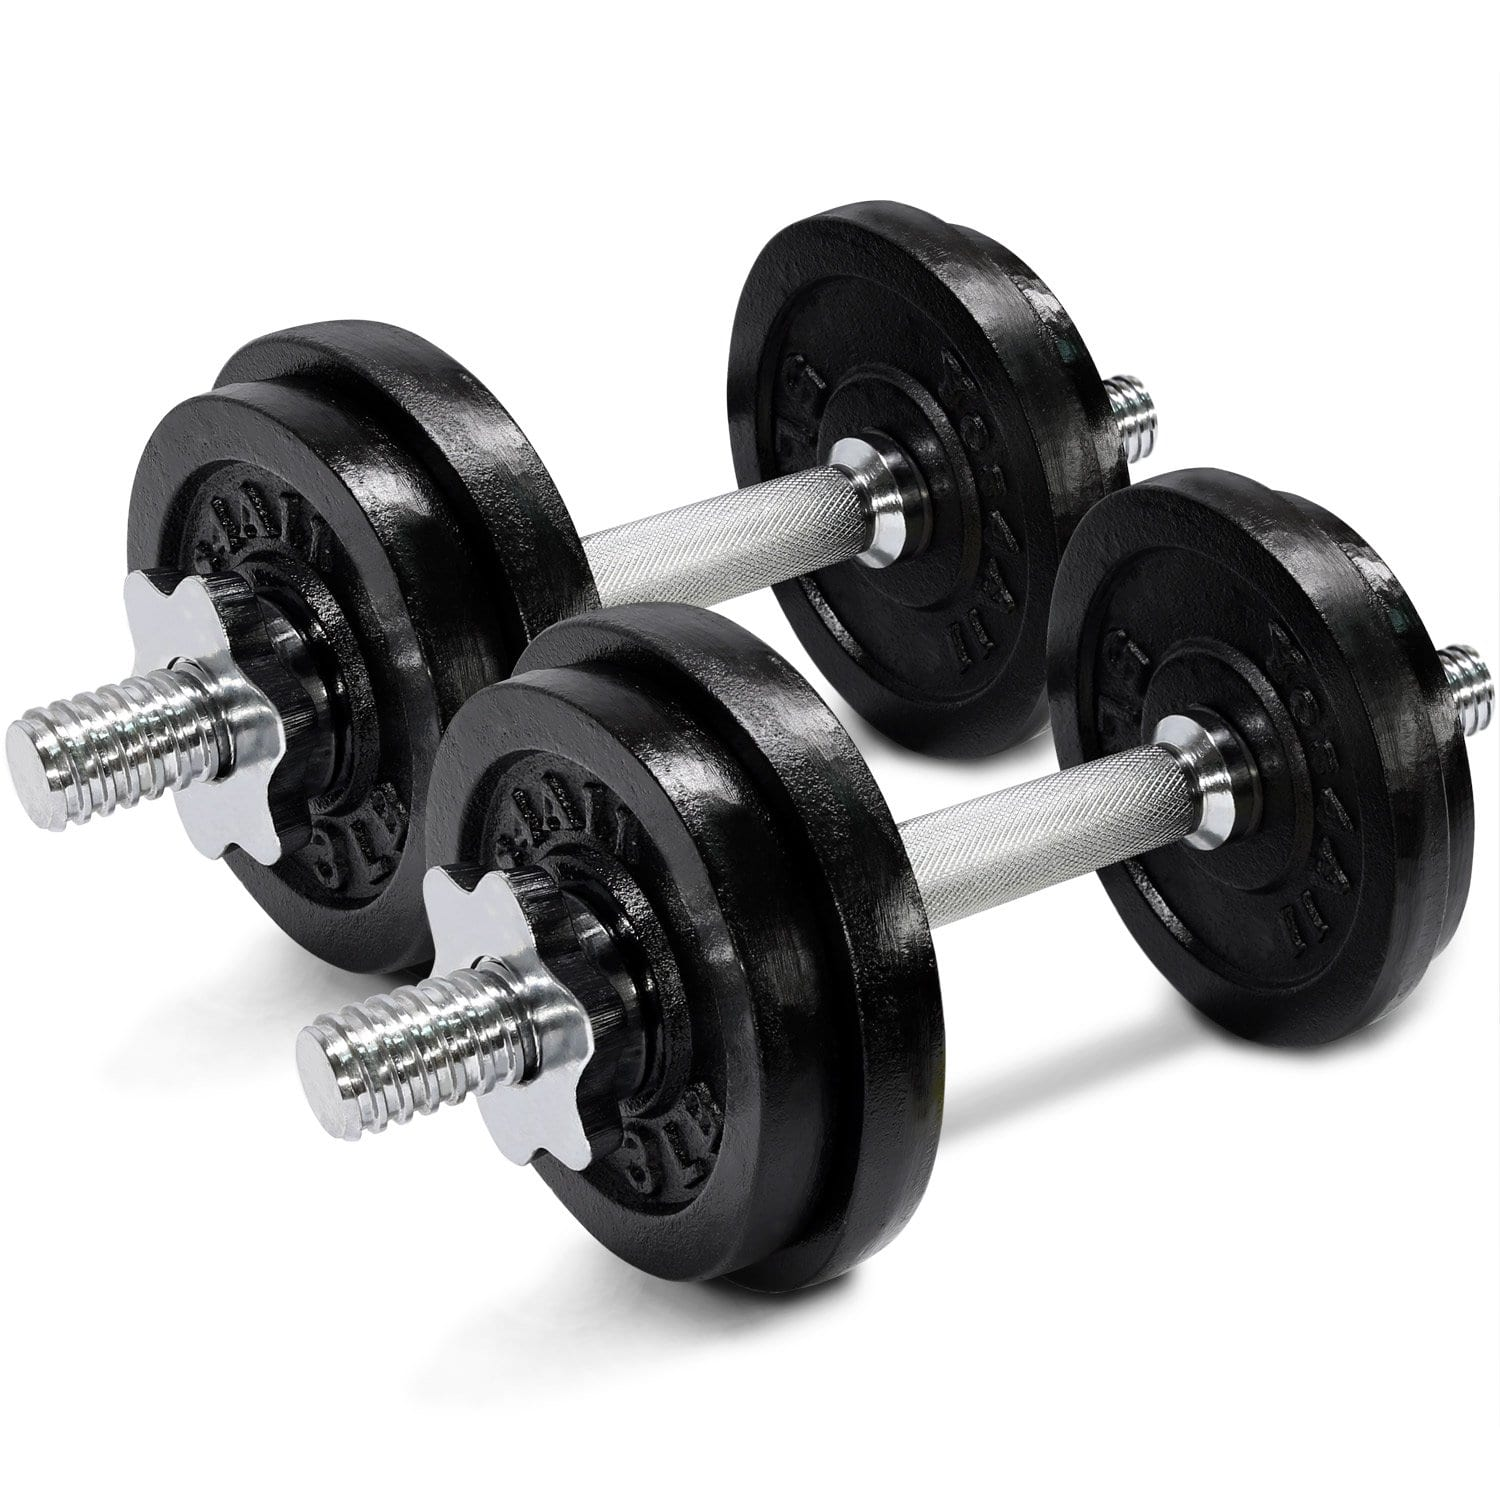 Yes4All Adjustable Dumbbells 40, 50, 52.5, 60 with Connector Options $64.99